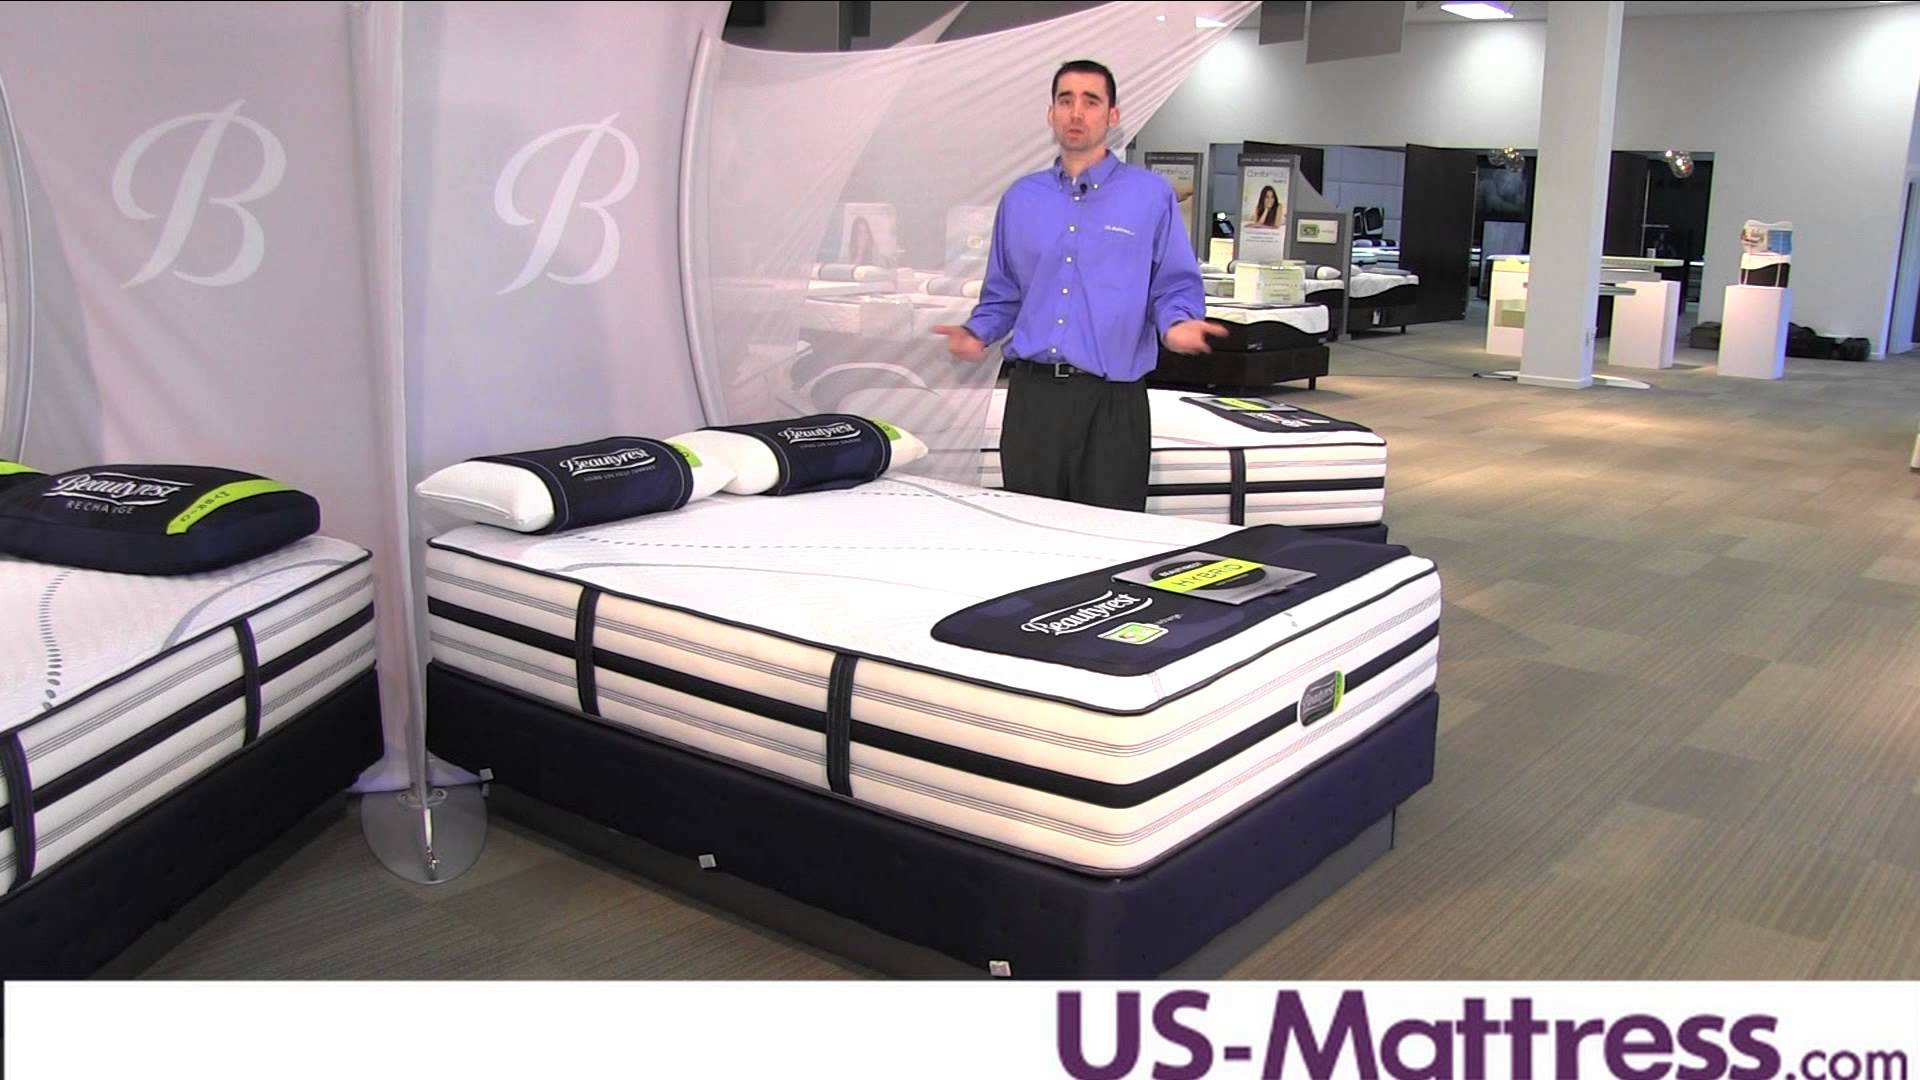 Simmons Beautyrest Mattress | Simmons Beautyrest Reviews | Simmons Beautyrest Extra-extra-firm Mattress